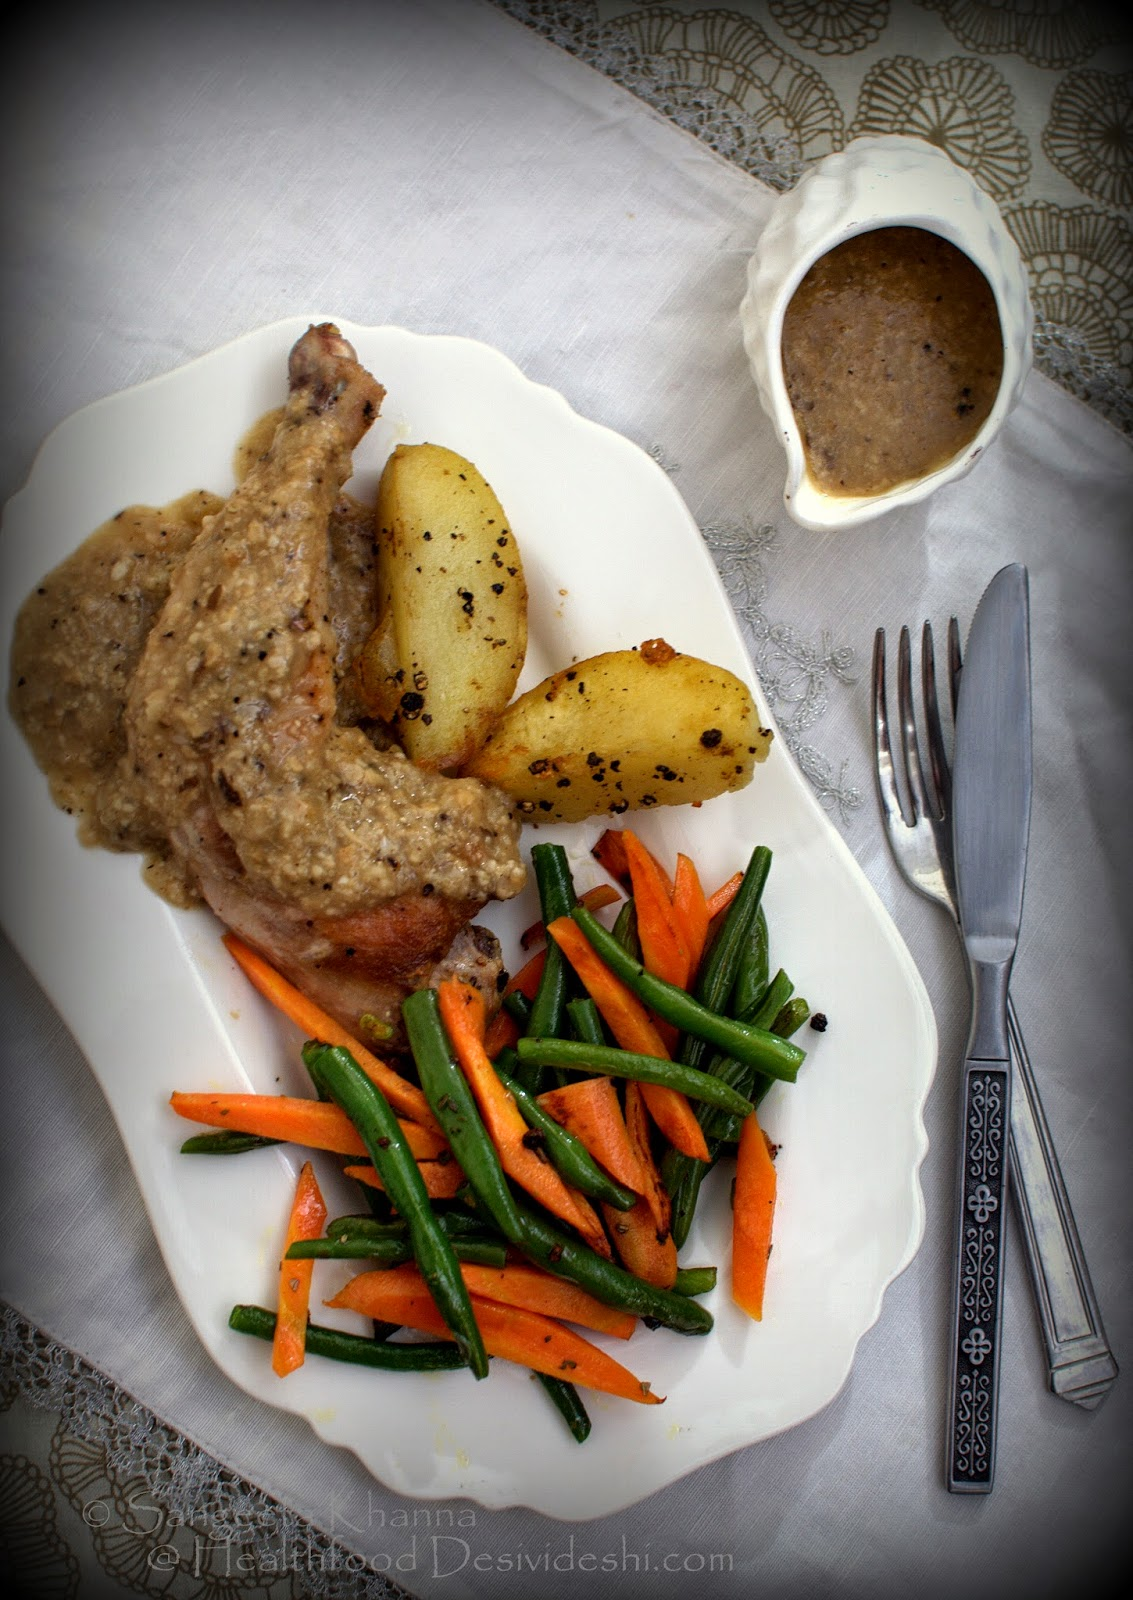 pan grilled chicken with mushroom brown sauce | recipe of mushroom based brown sauce